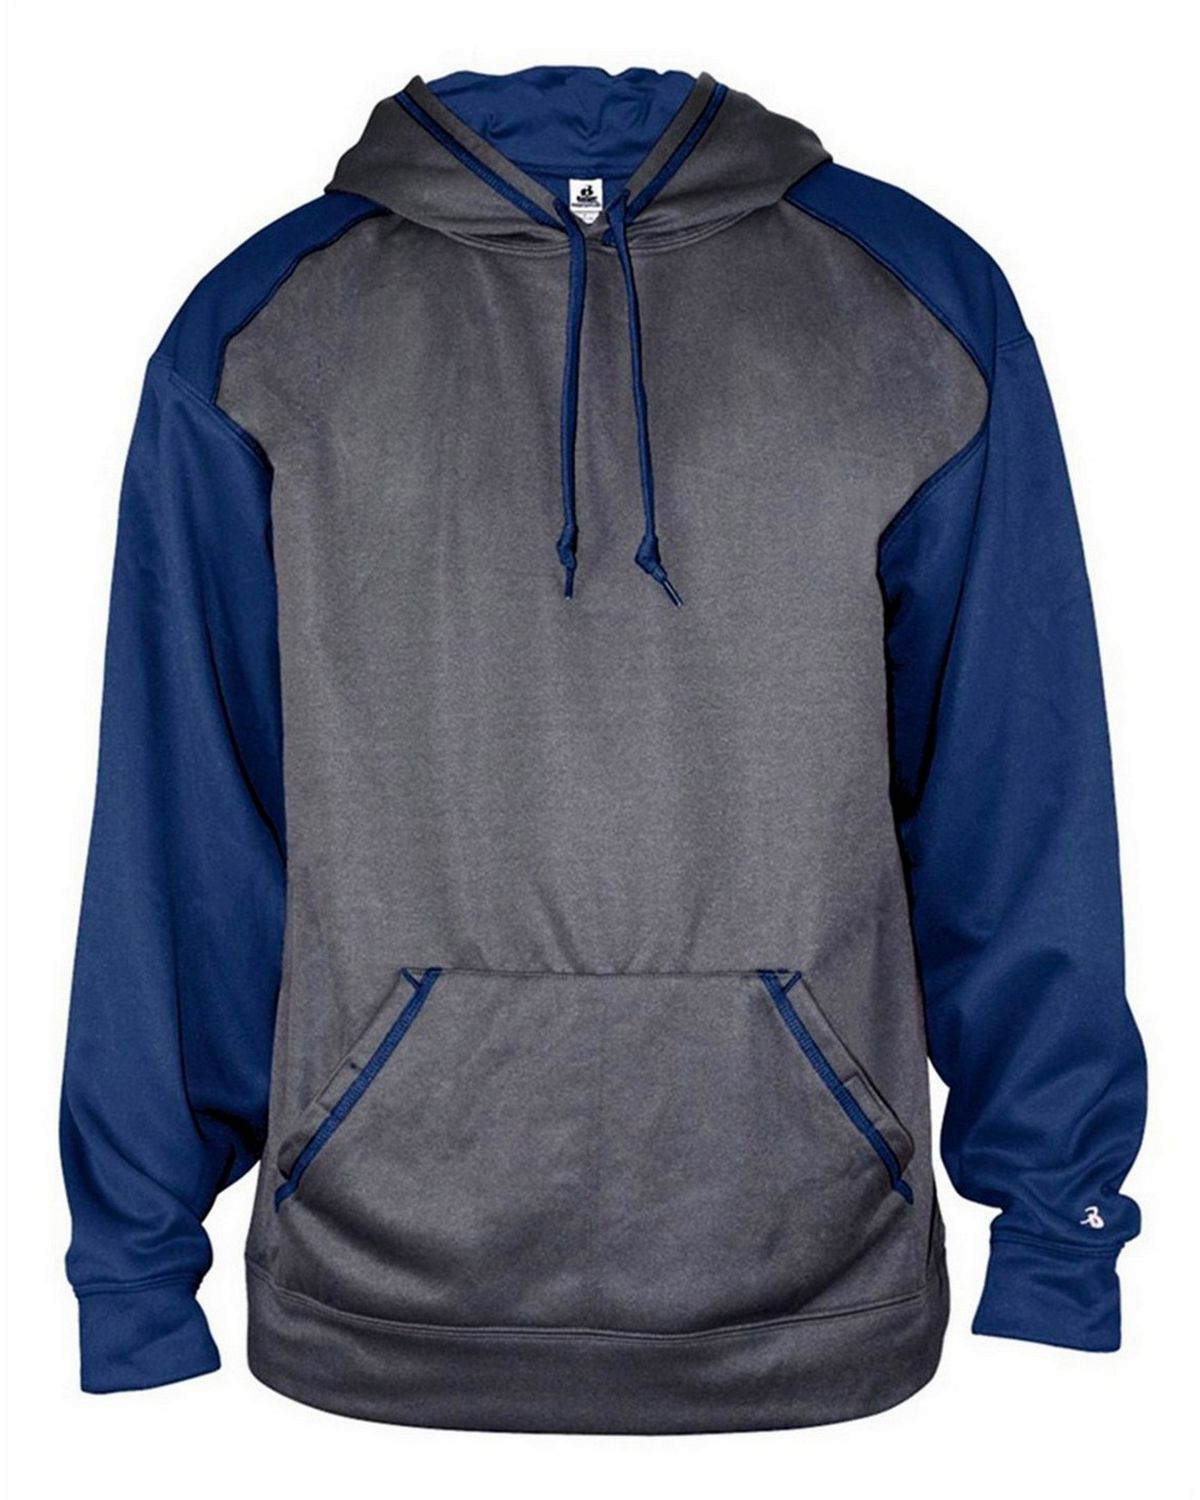 Badger 1468 Sport Heather Hoodie - Carbon/Royal - M 1468